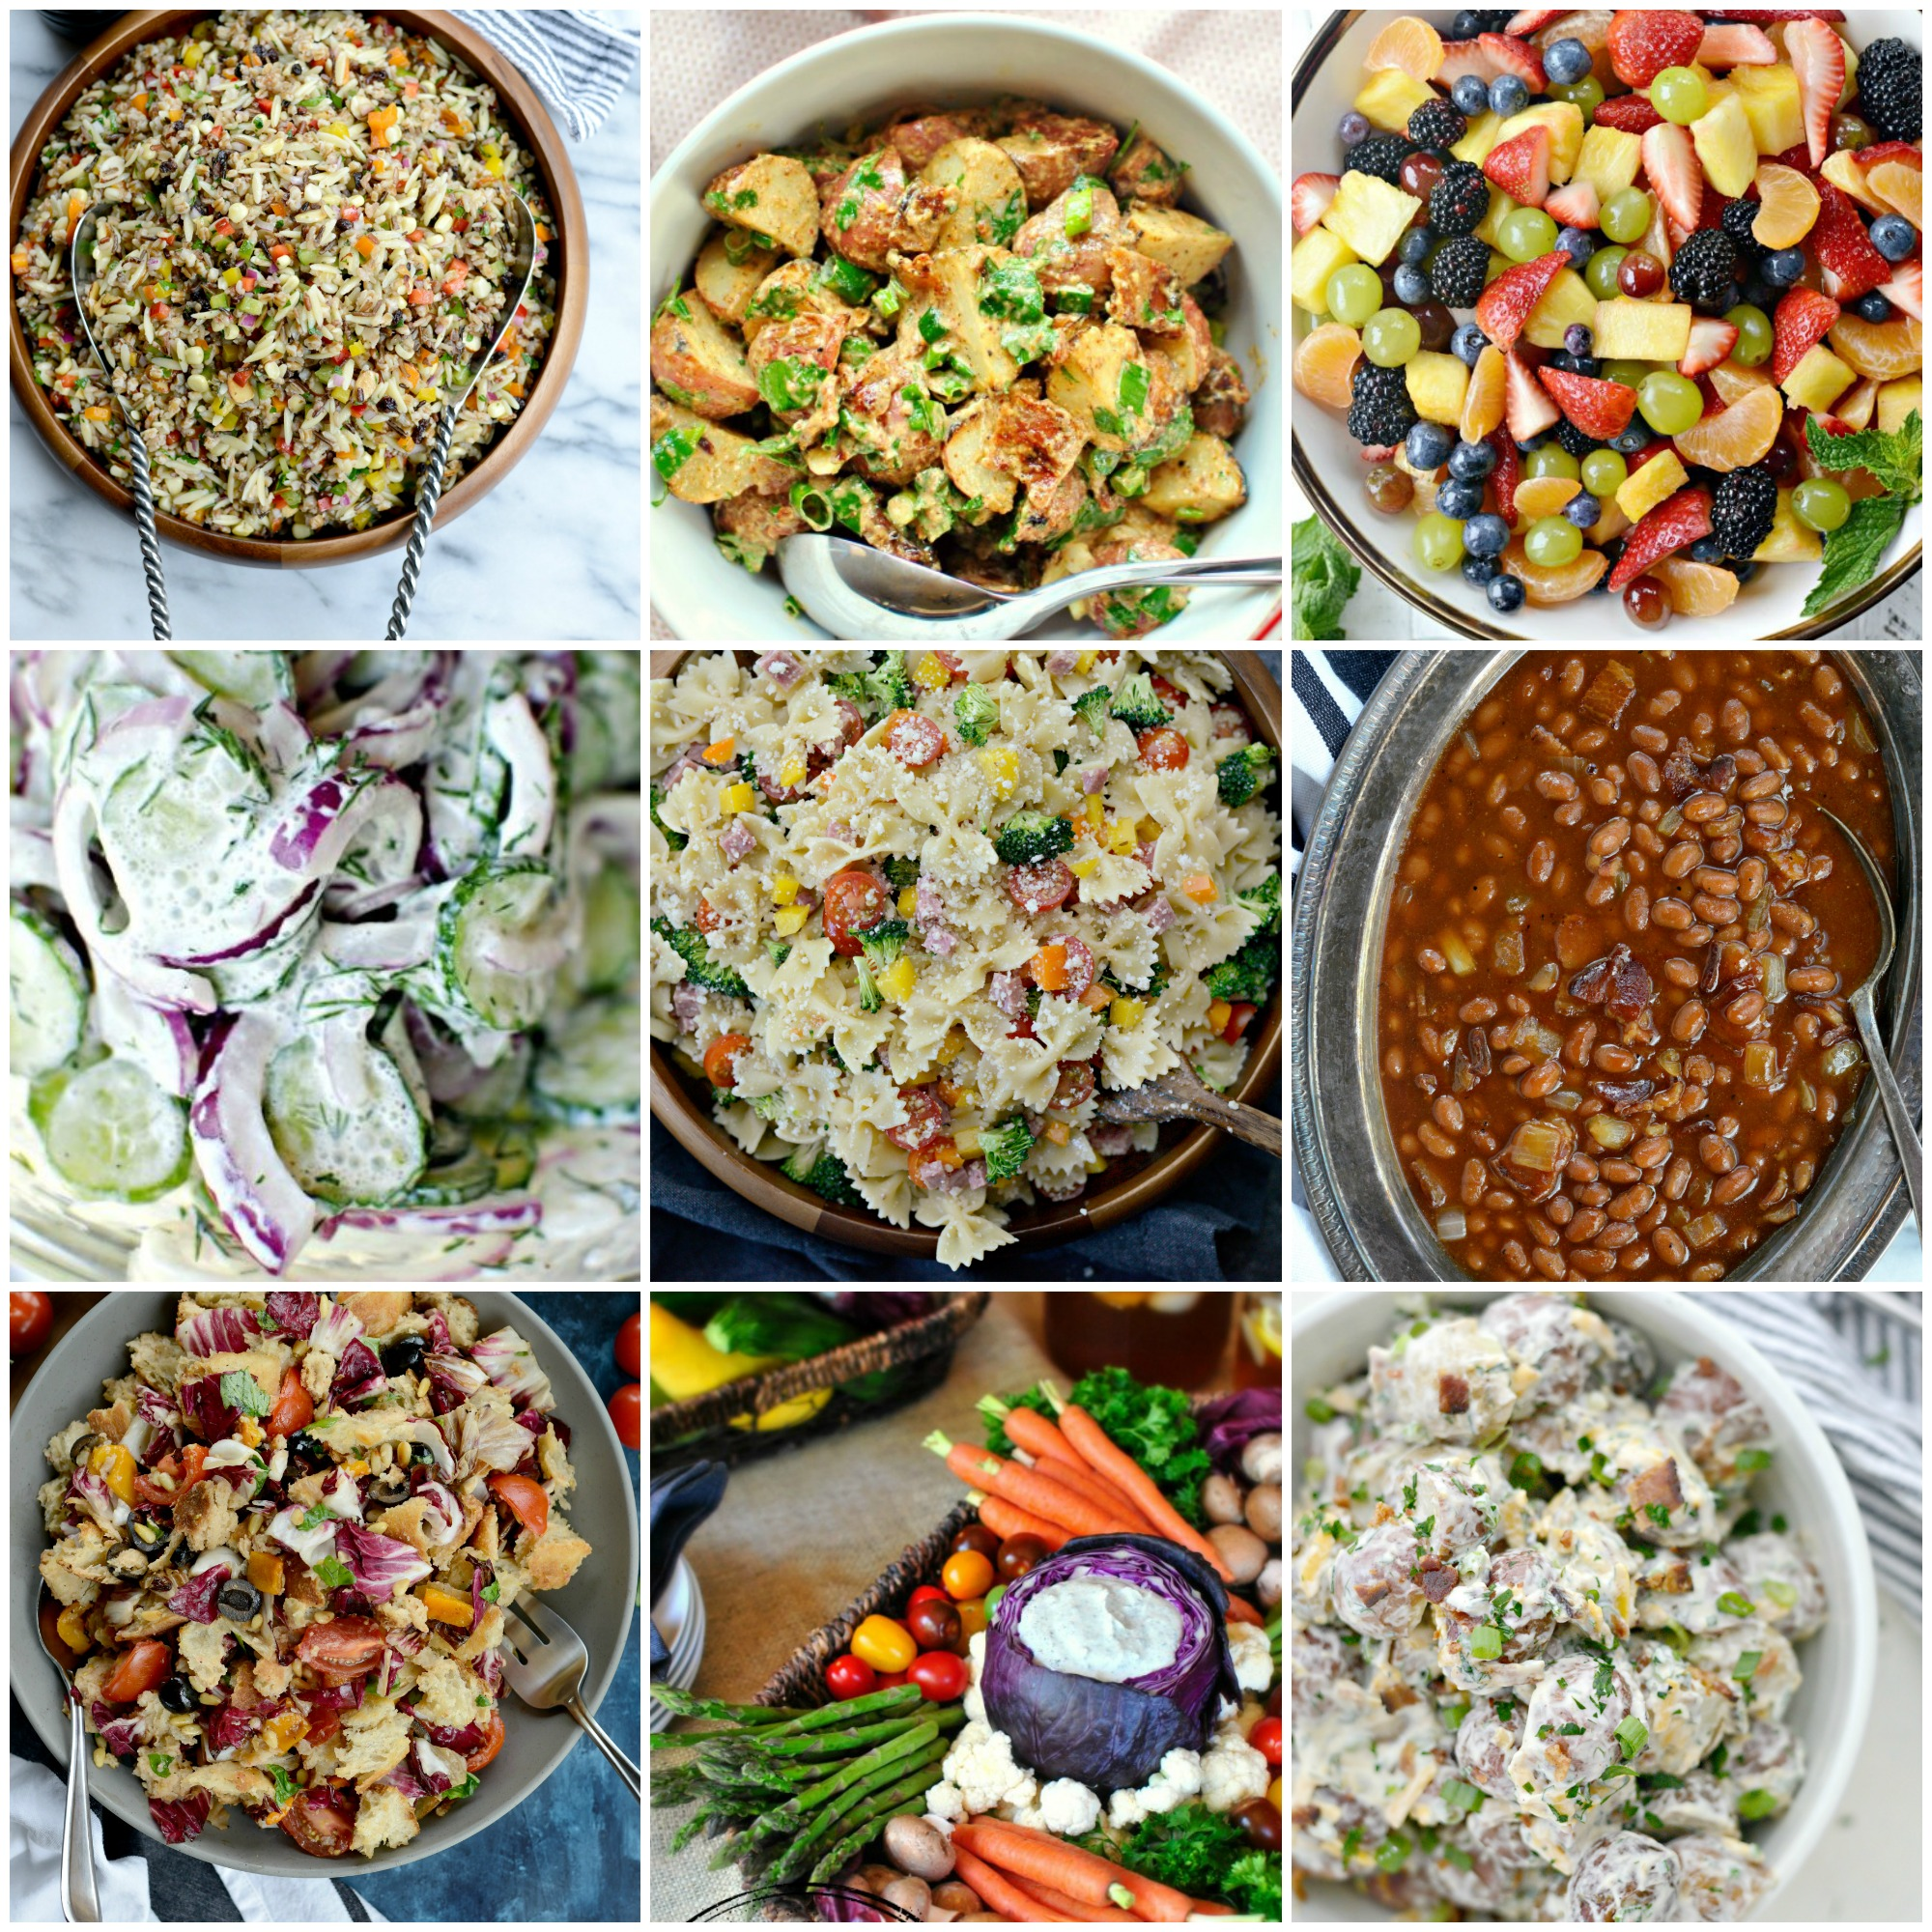 Simply scratch 25 best salads and side dishes to bring to for Side dishes for bbq ribs and chicken